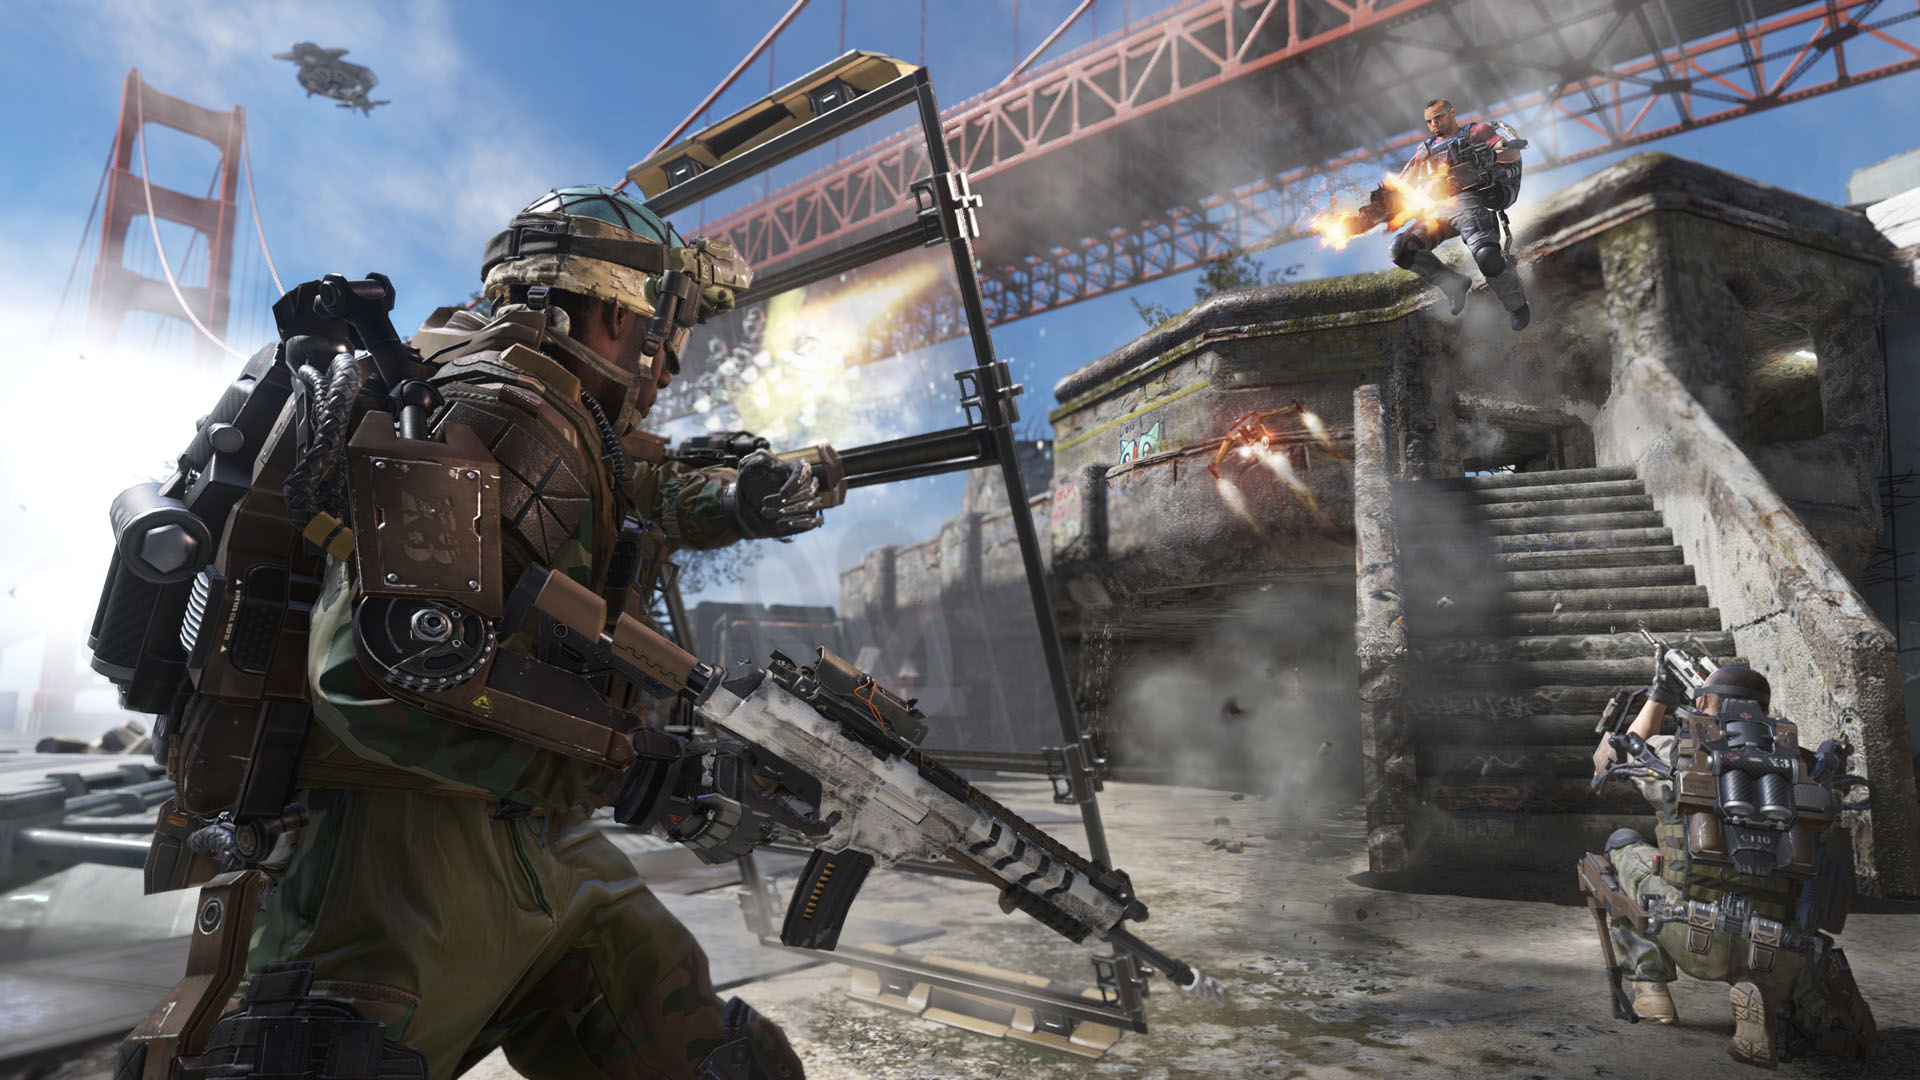 Call of Duty's single-player campaigns are selfish, decadent and way too much fun